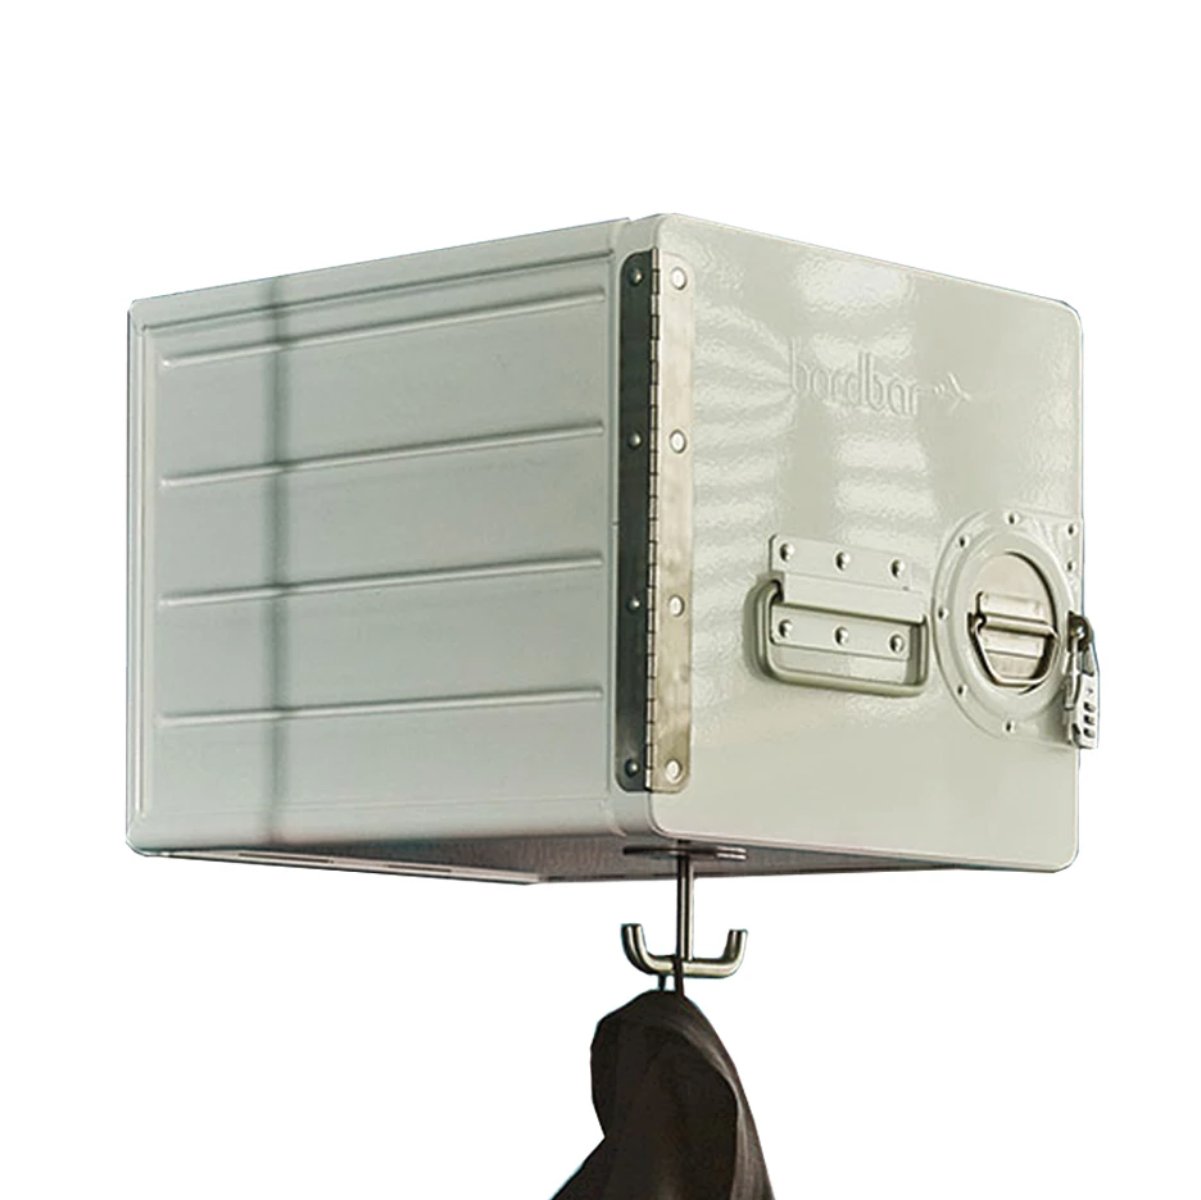 Bordbar Bow wall storage box with hooks